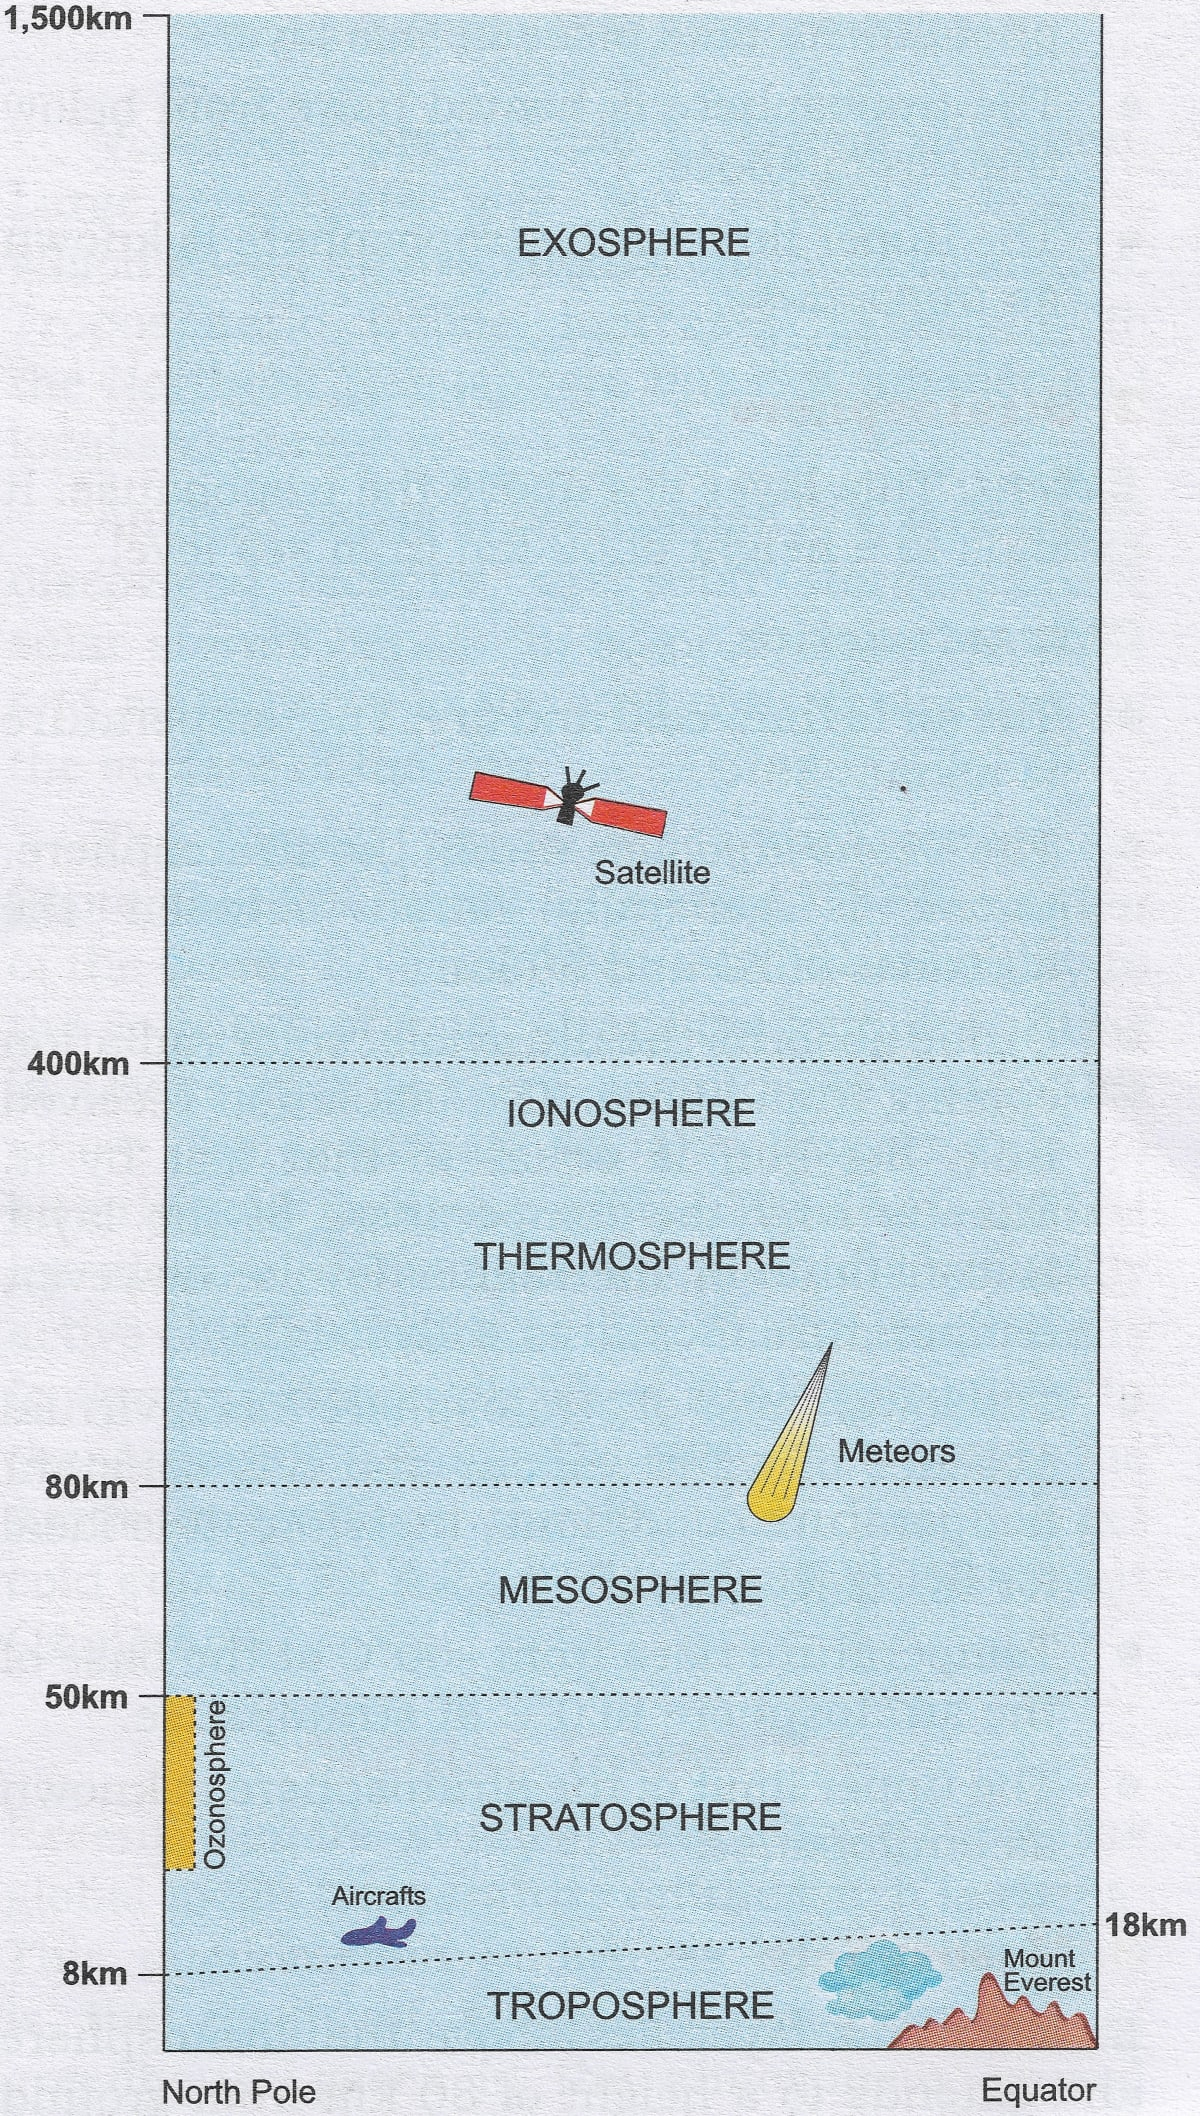 Draw a well labelled diagram of the structure of the Earth's atmosphere. Composition and Structure of Atmosphere, Total Geography ICSE Class 9 Solutions.